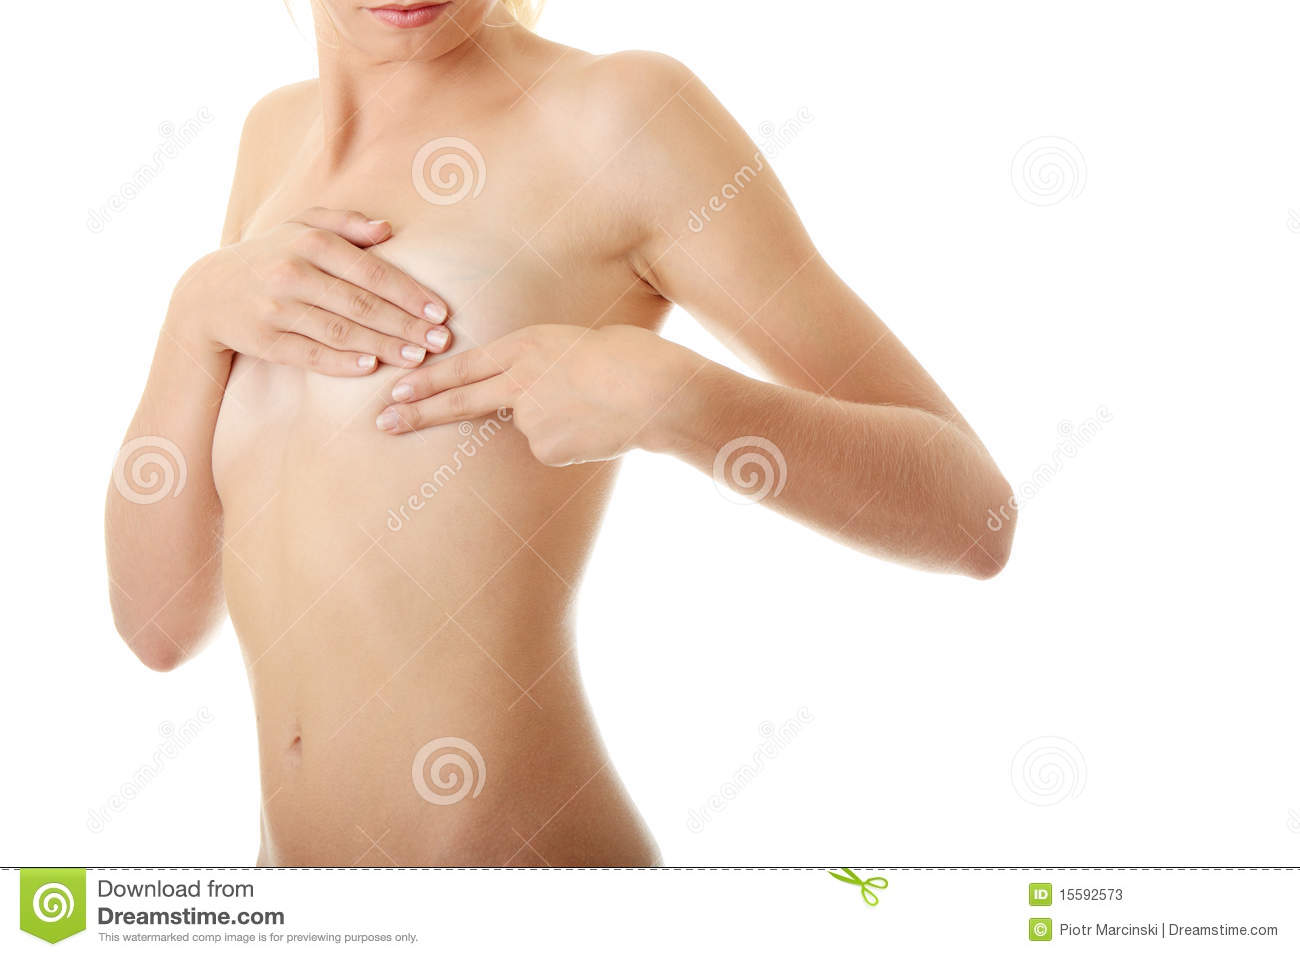 How To Take Care Of Breasts Naturally